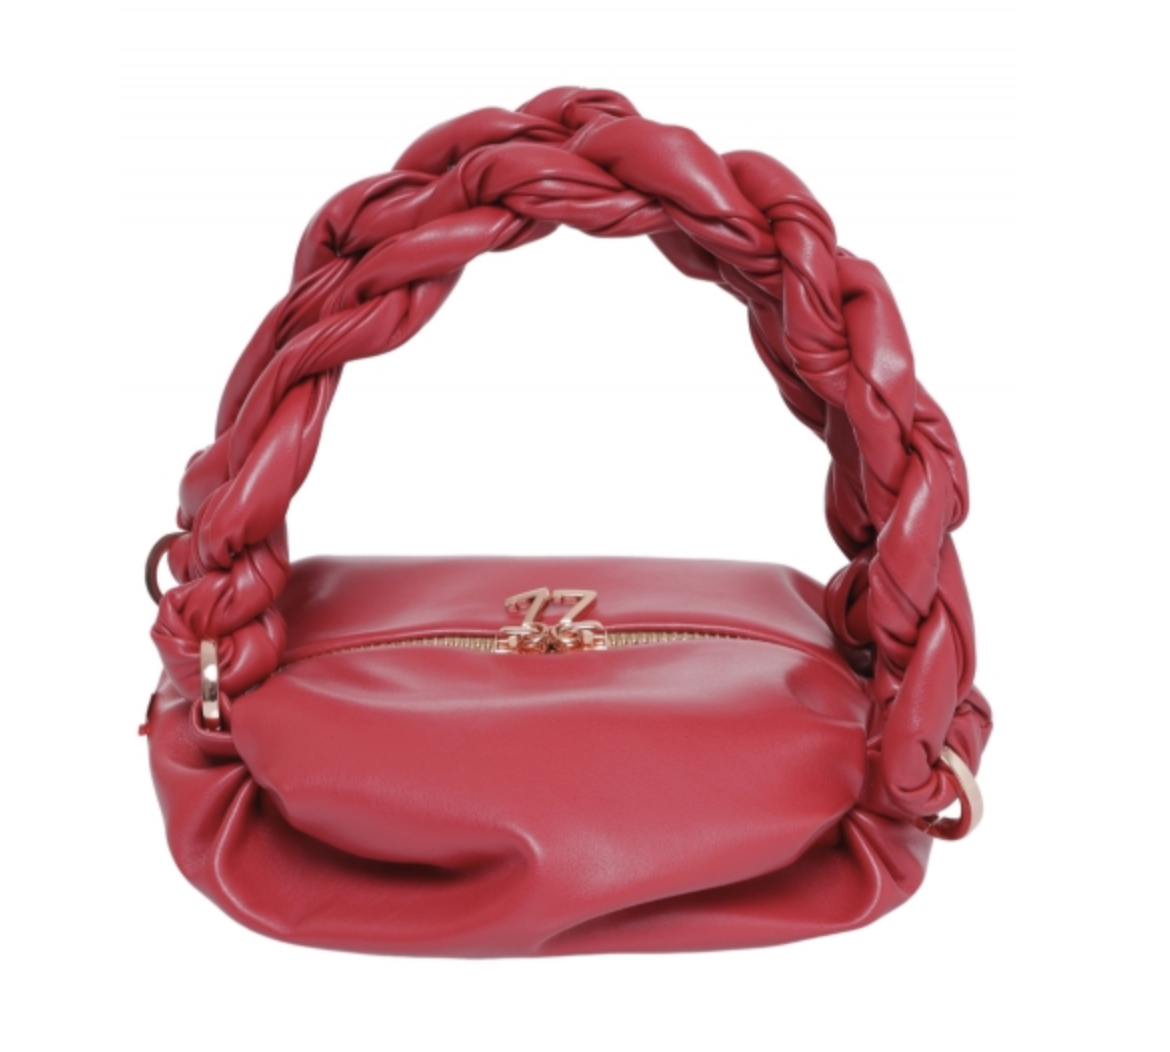 Ninika Red Tiny Tote Bag - XS by 0711 Tbilisi on curated-crowd.com